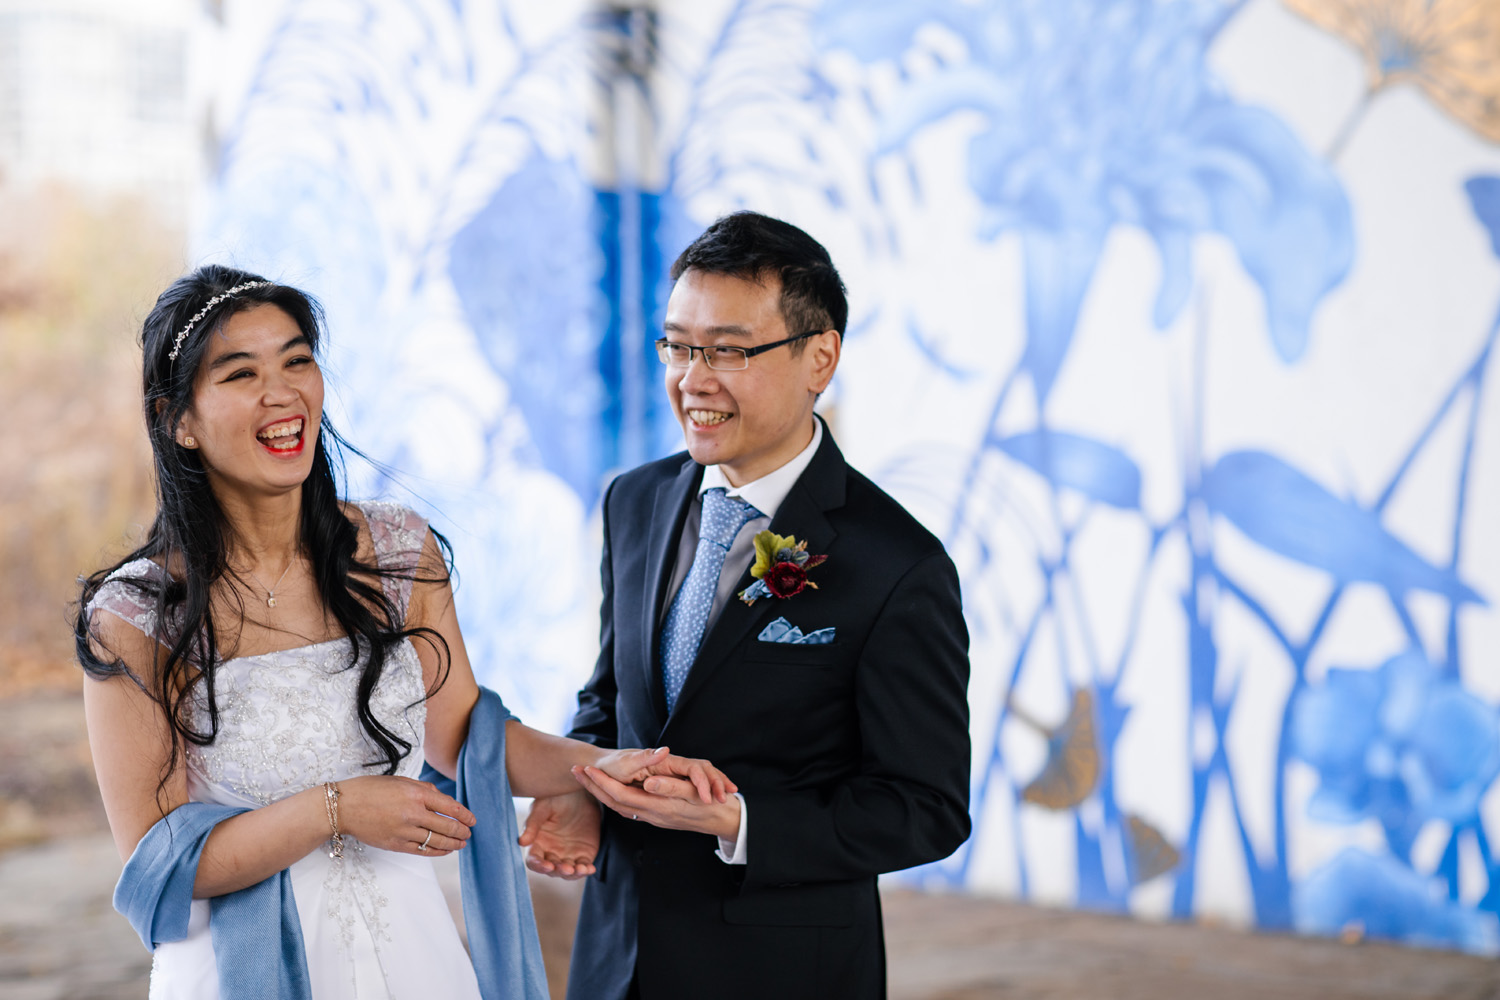 bride and groom laughing in outdoor wedding ceremony